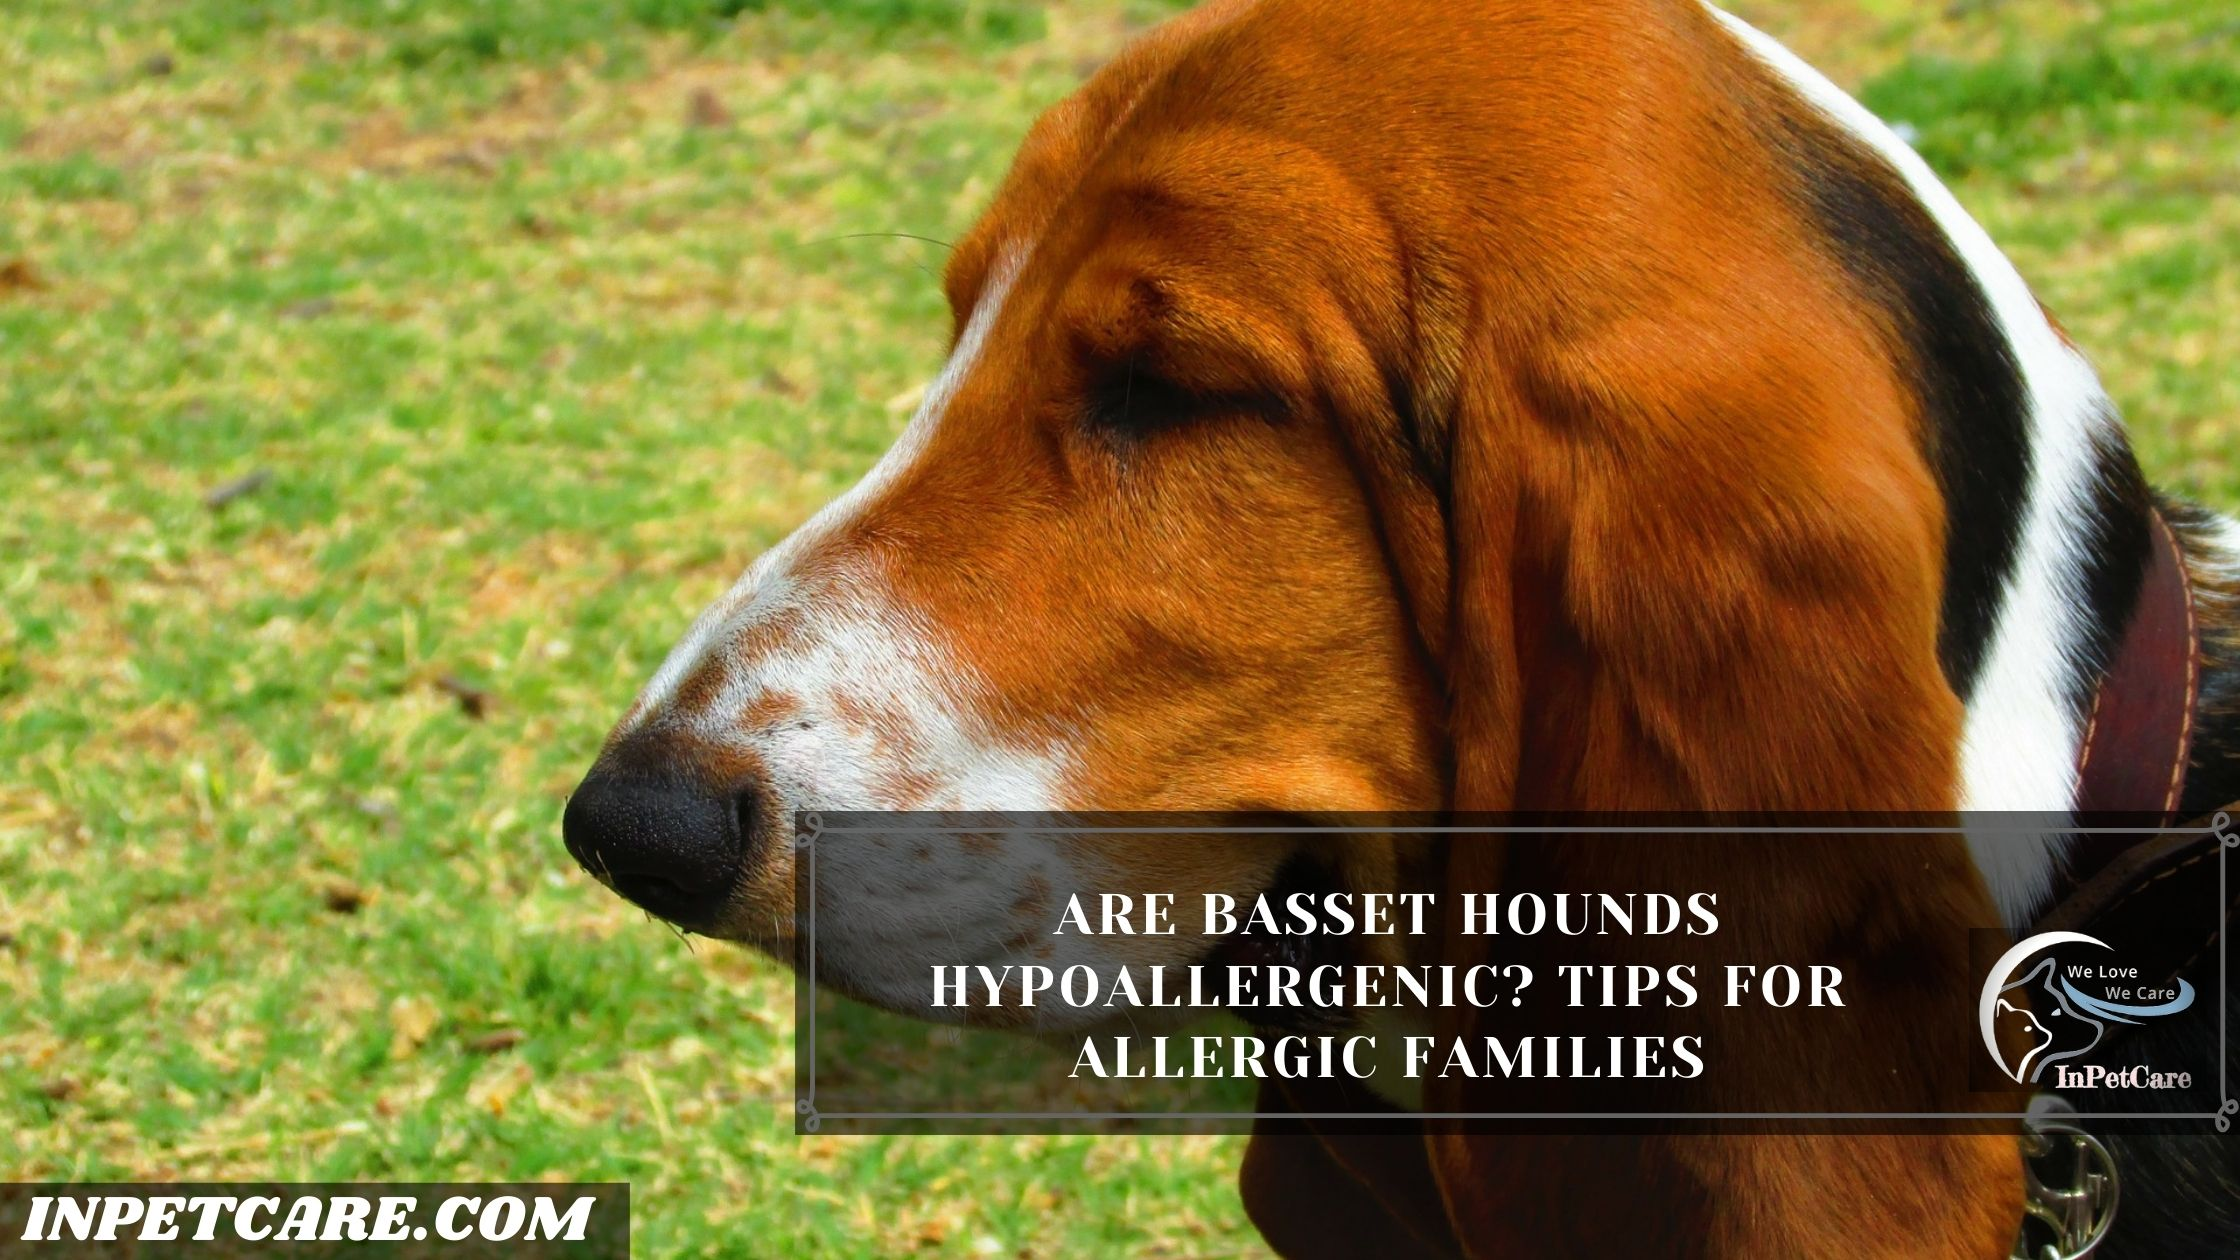 Are Basset Hounds Hypoallergenic?